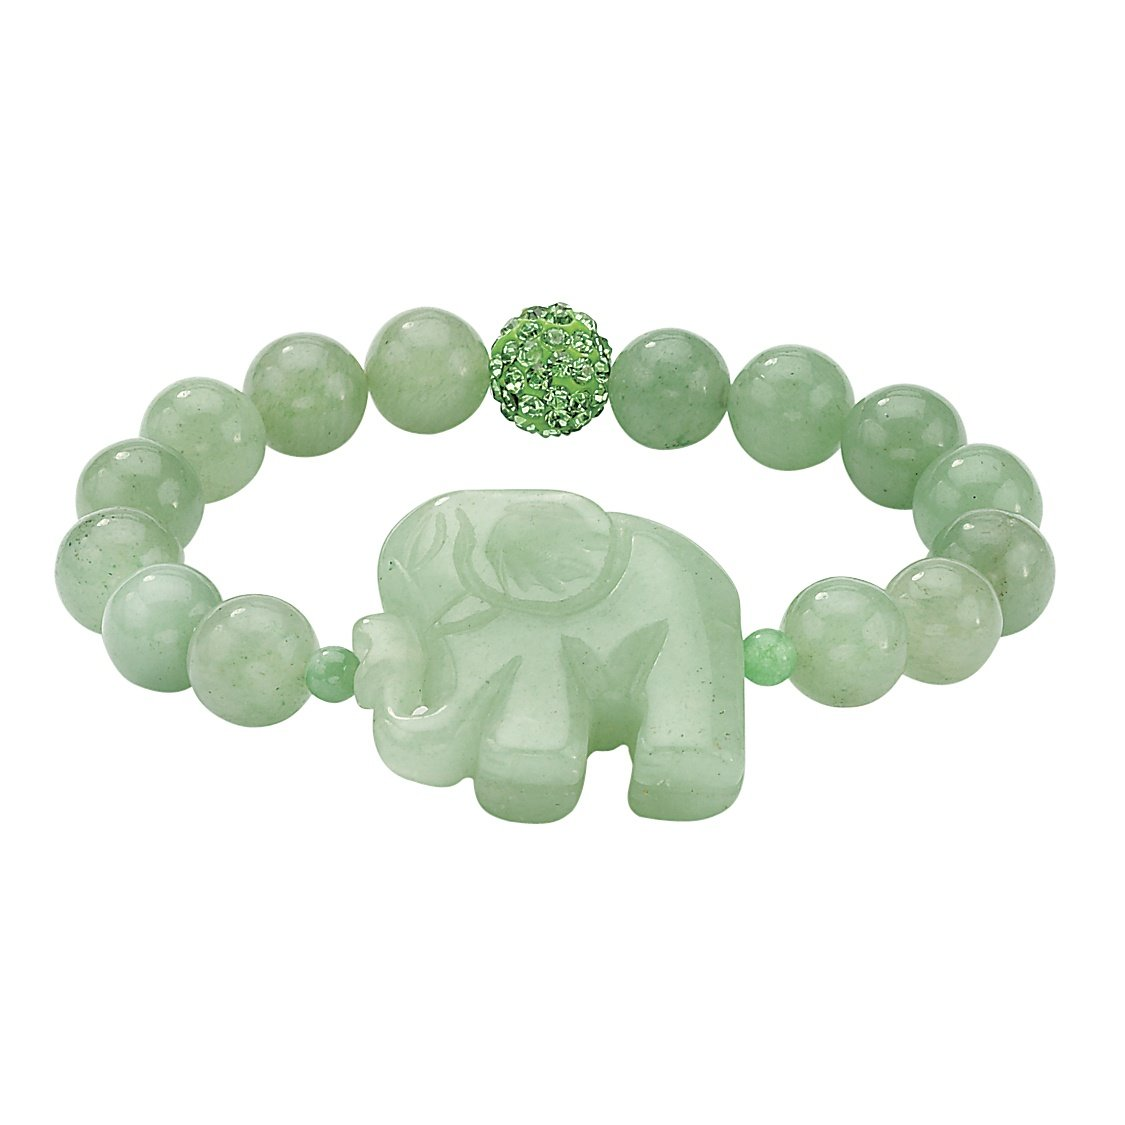 Palm Beach Jewelry Green Agate and Crystal Accent Elephant Stretch Bracelet (10mm), 8''